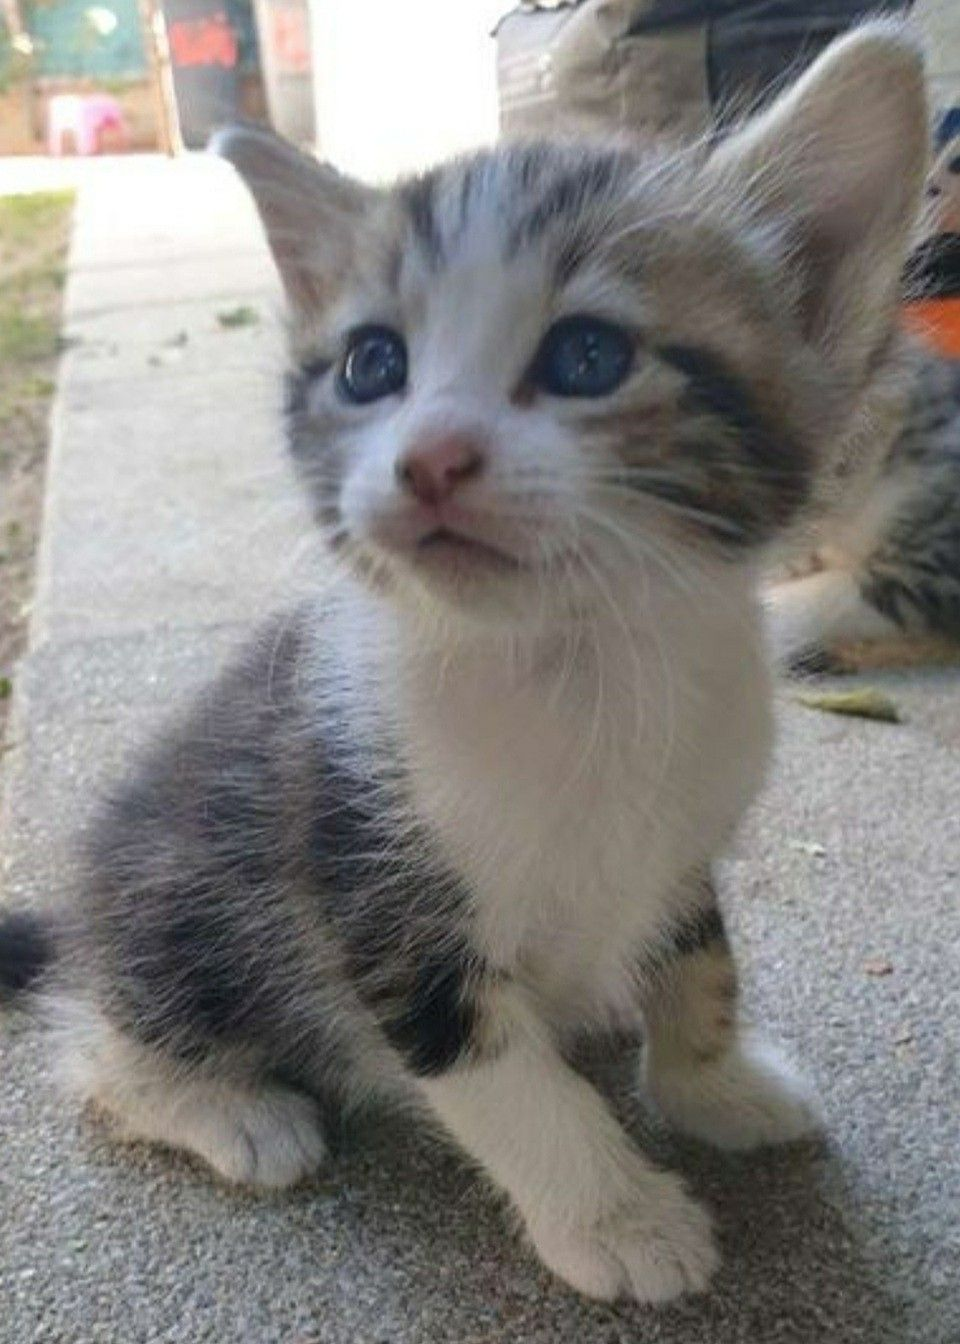 Pin By Judy Diamond On Chaton Trop Mignon In 2020 Cute Cats And Kittens Cute Cats Photos Kittens